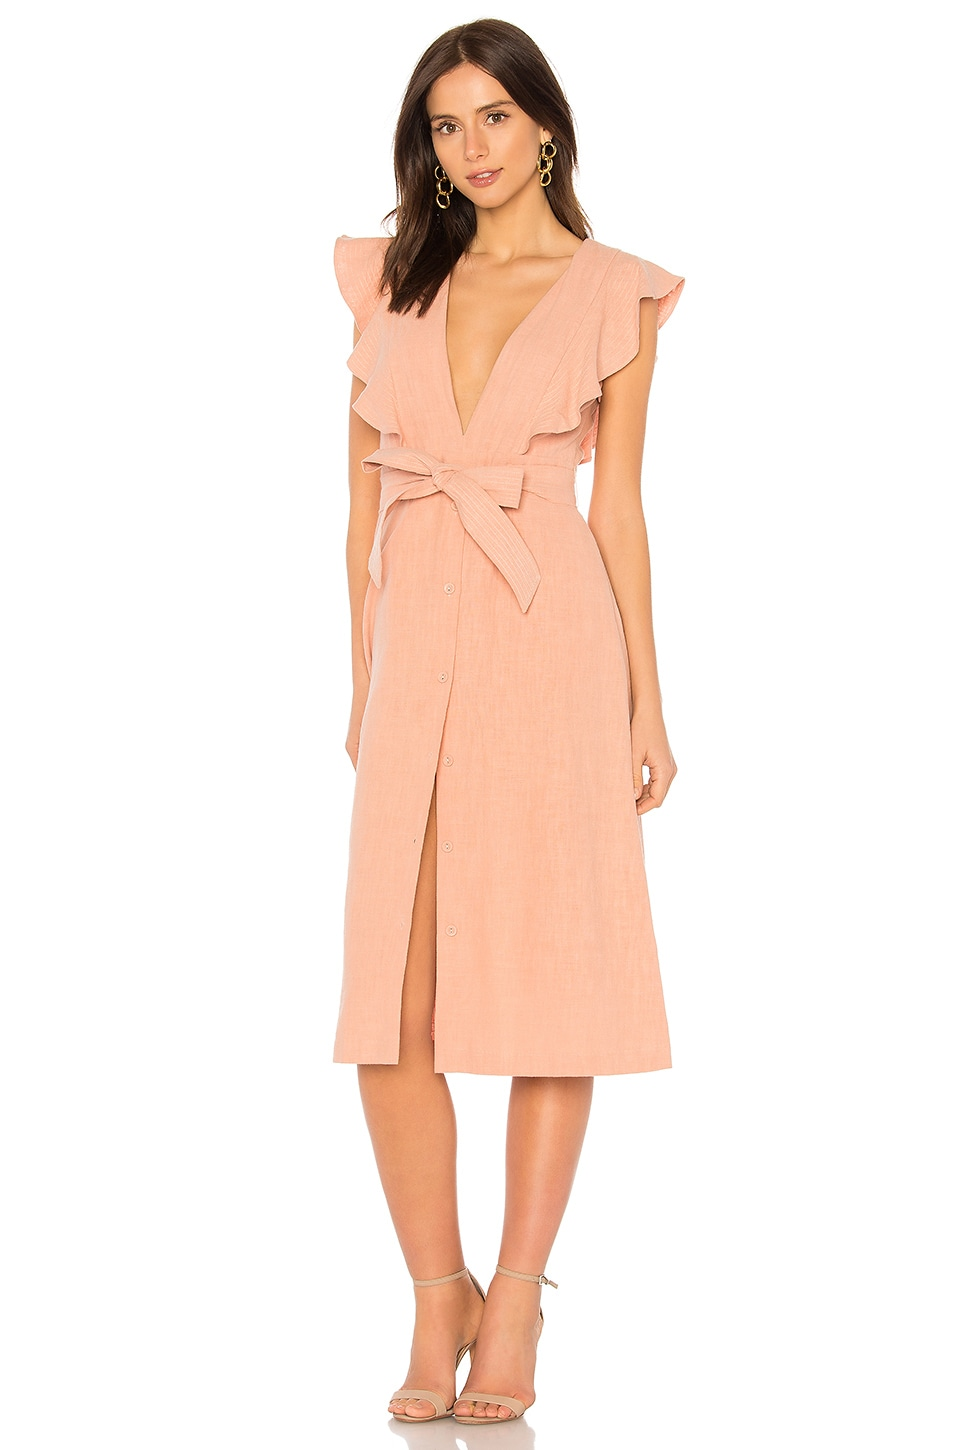 SAYLOR Sue Dress in Dusty Coral